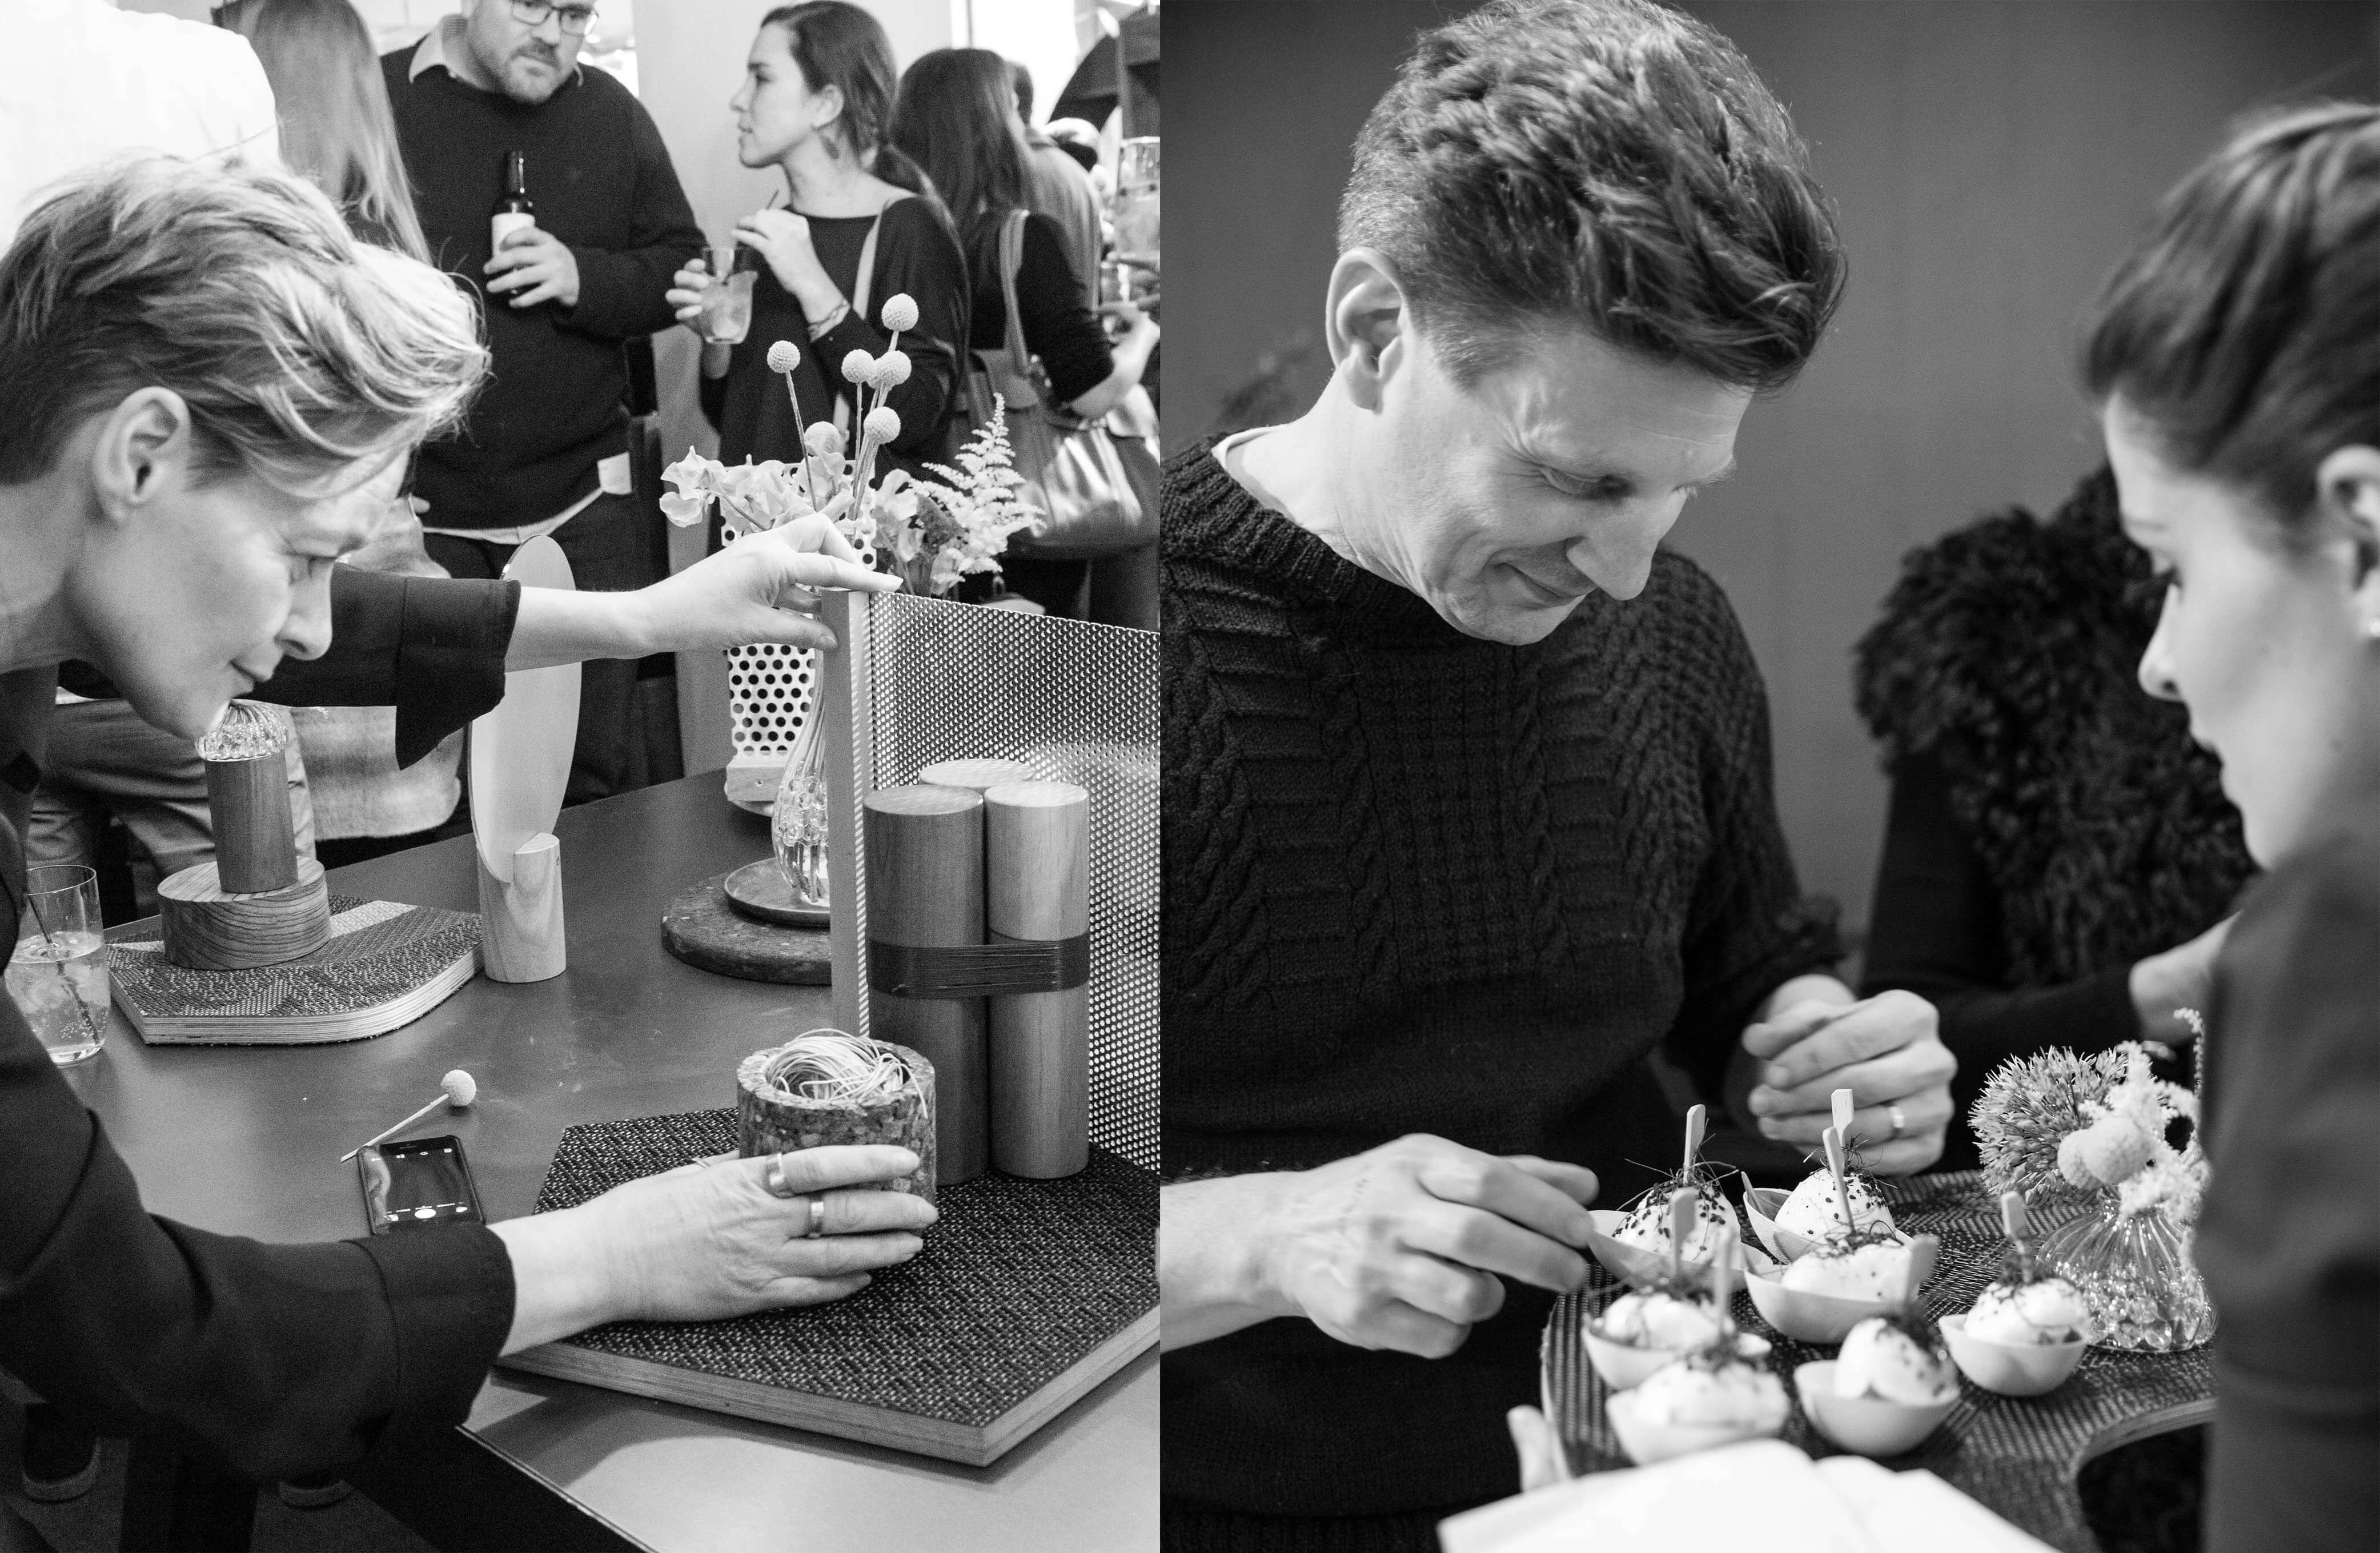 Bolon By You event with Tack Studio and Jacopo Sarzi